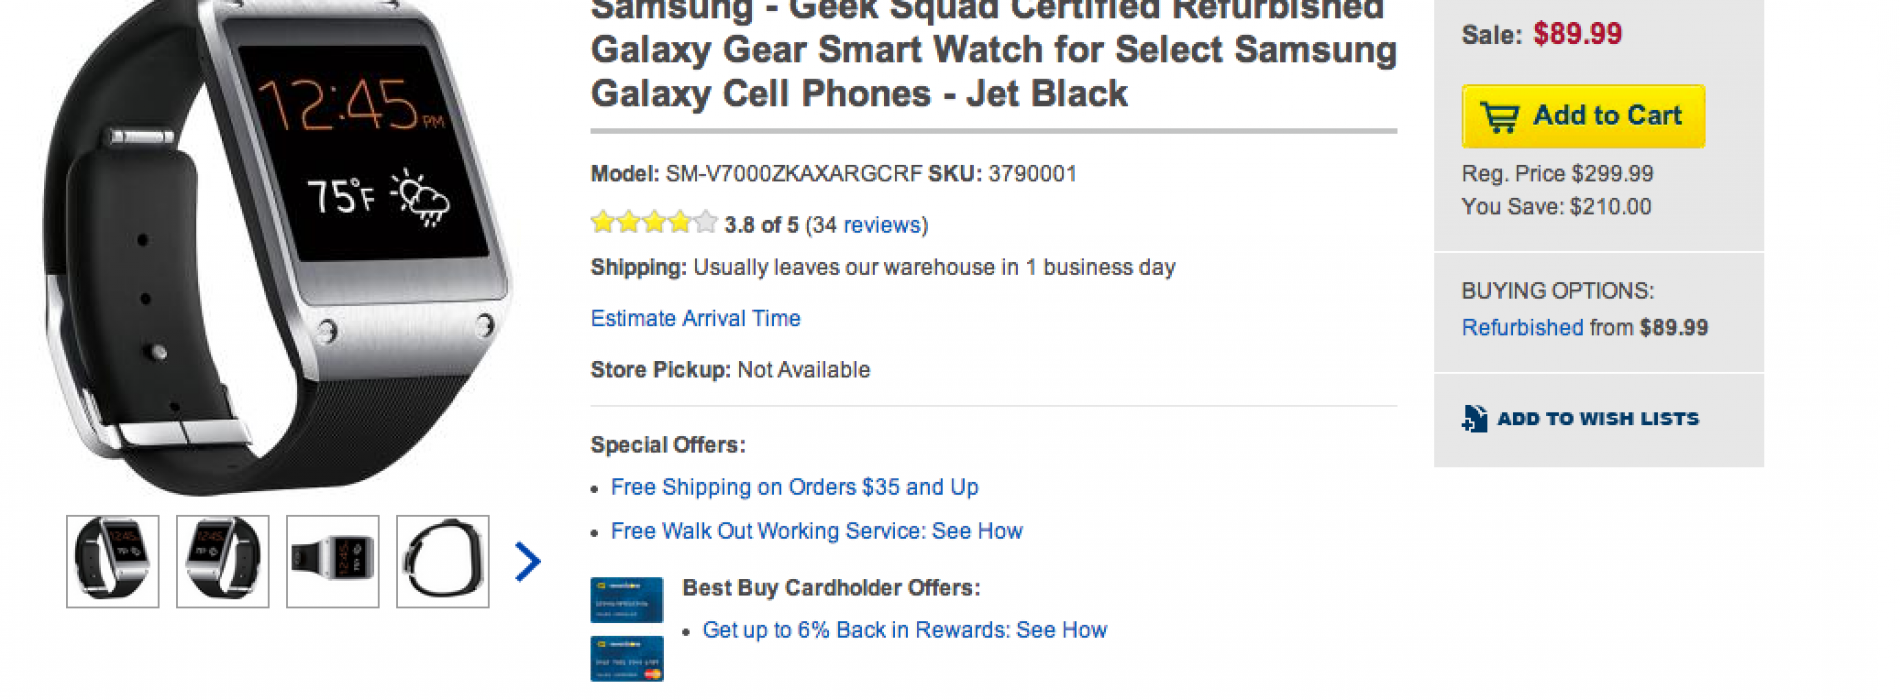 Grab Samsung's original Galaxy Gear for just $89 today